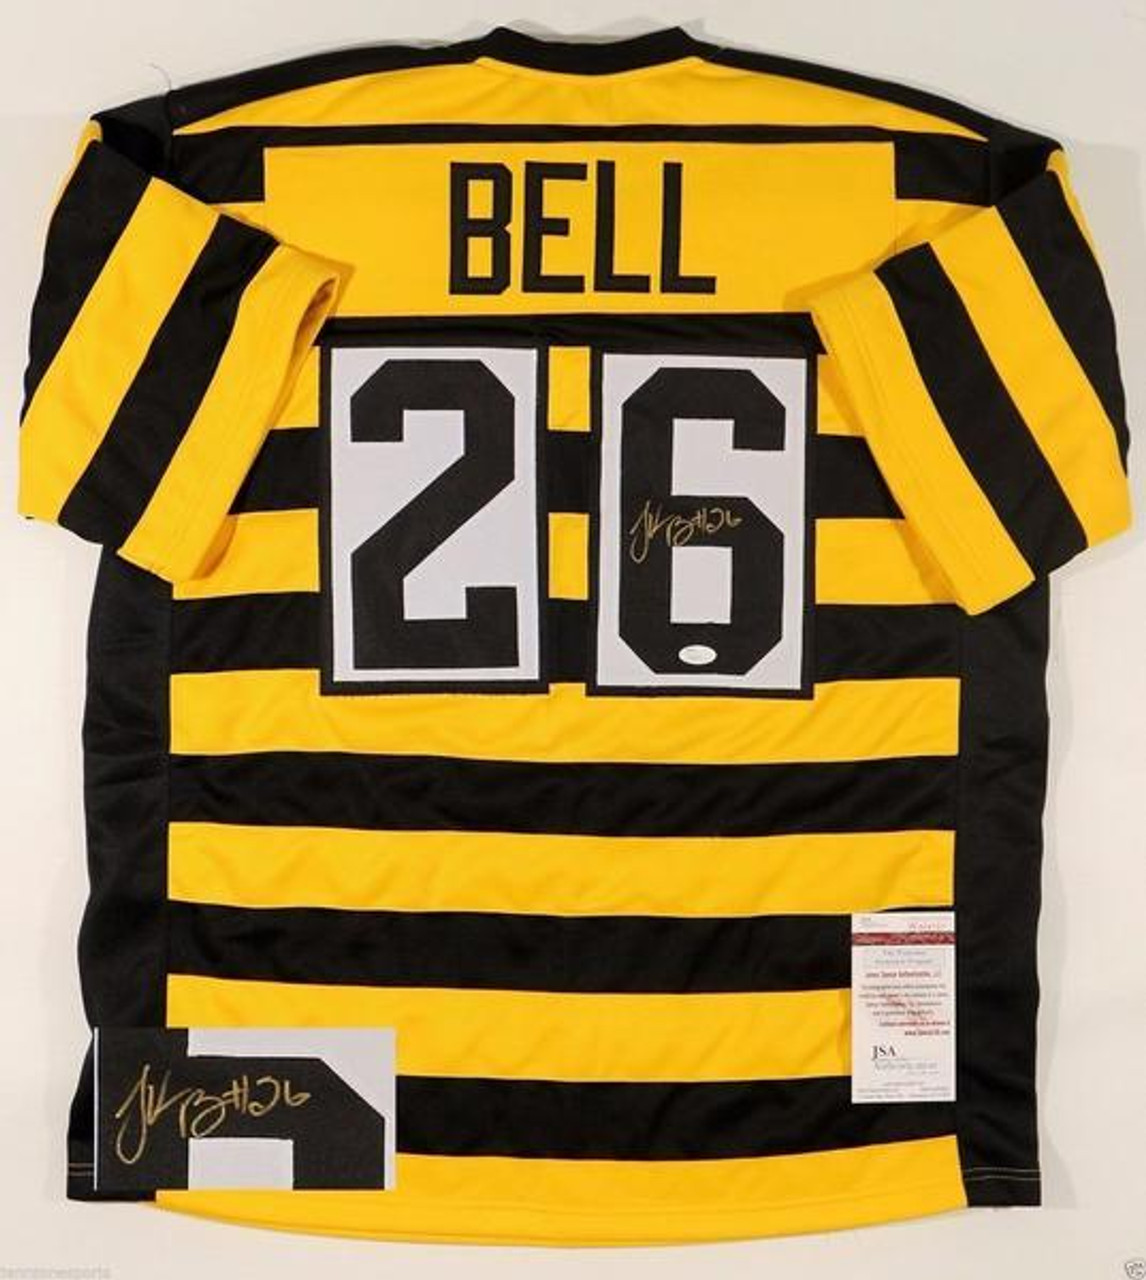 timeless design 02ec4 d2e67 Le'Veon Bell Pittsburgh Steelers Autographed Throwback Bumblebee Custom  Football Jersey